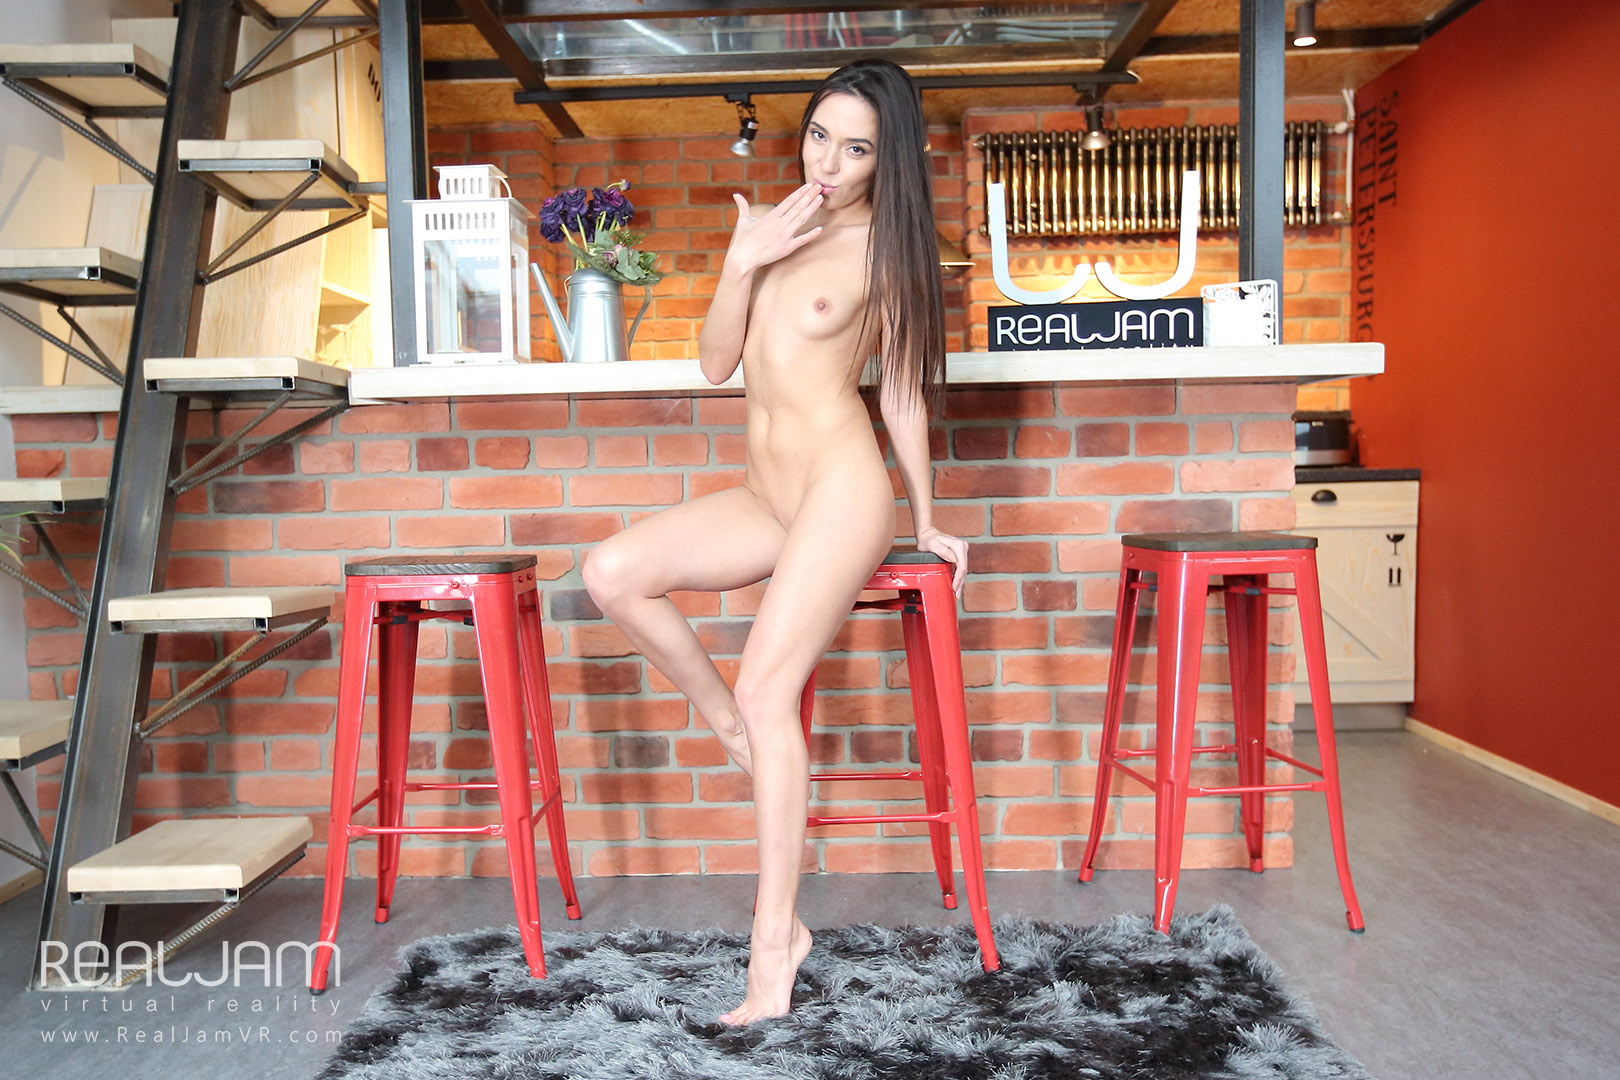 Fun At The Bar - Brunette Fingers in Public Kerry Cherry